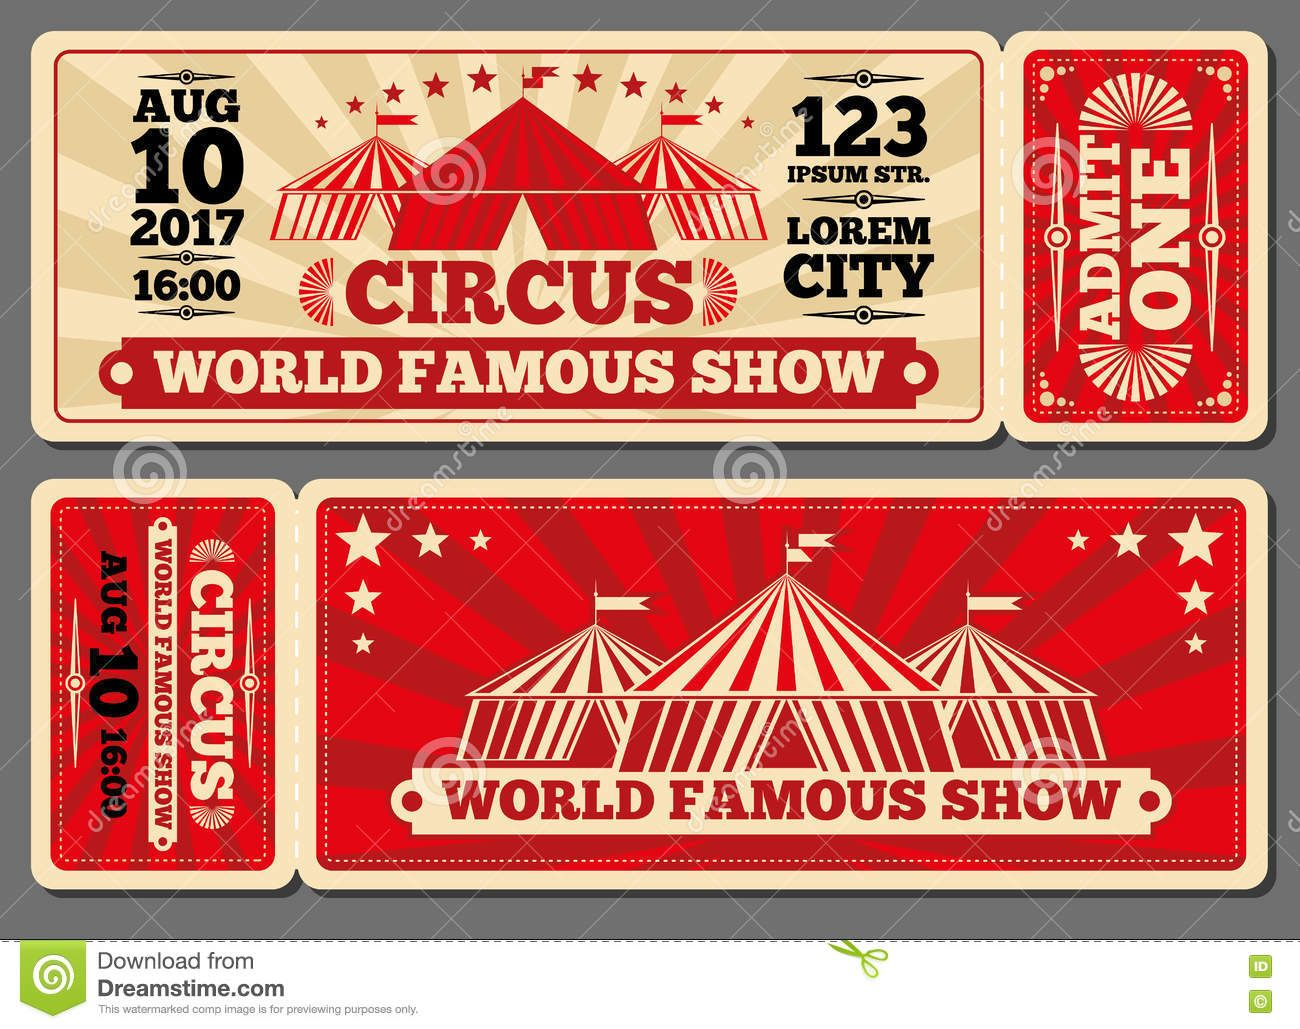 Circus magic show entrance vector tickets templates download from circus magic show entrance vector tickets templates download from over 65 million high quality stock photos images vectors sign up for free today maxwellsz